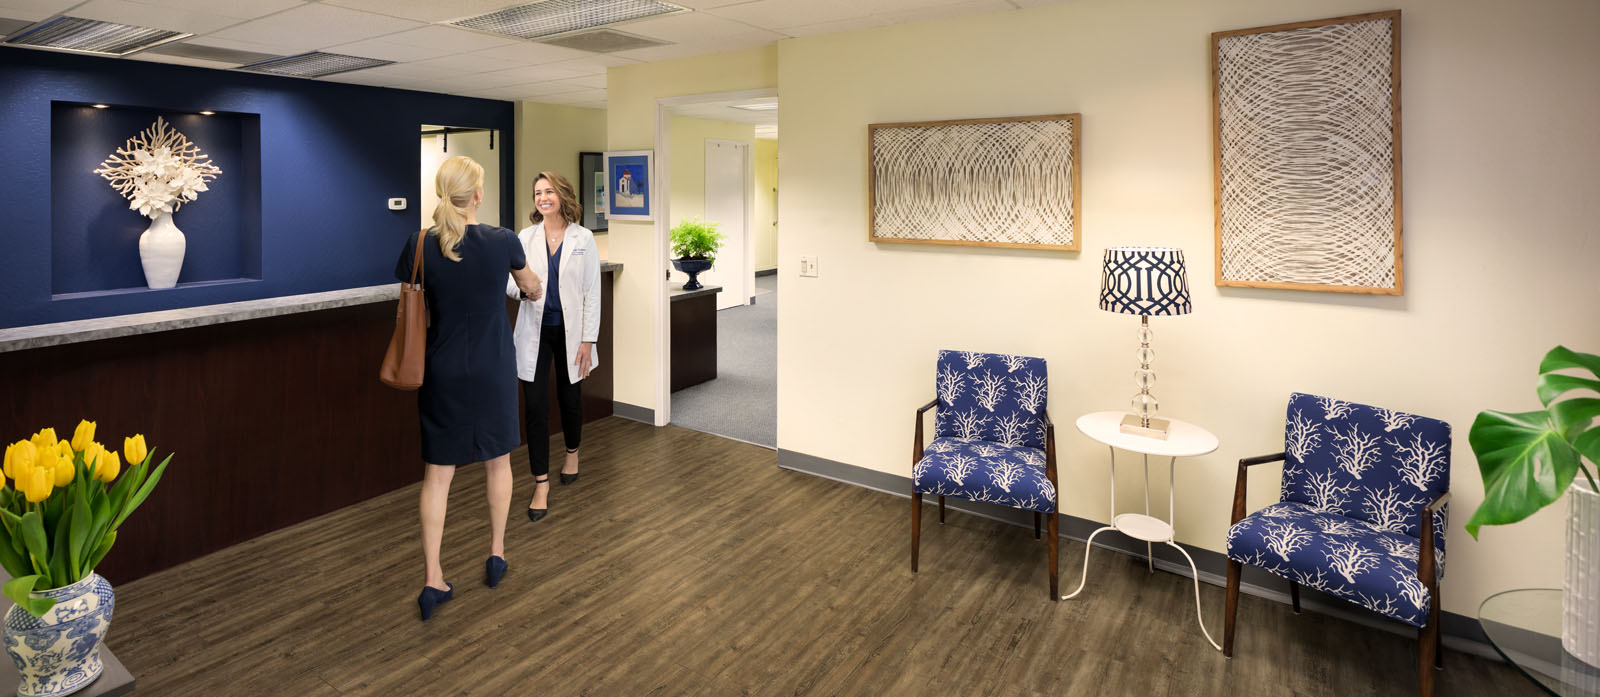 The Hearing Solution Sacramento Audiologist Office Interior